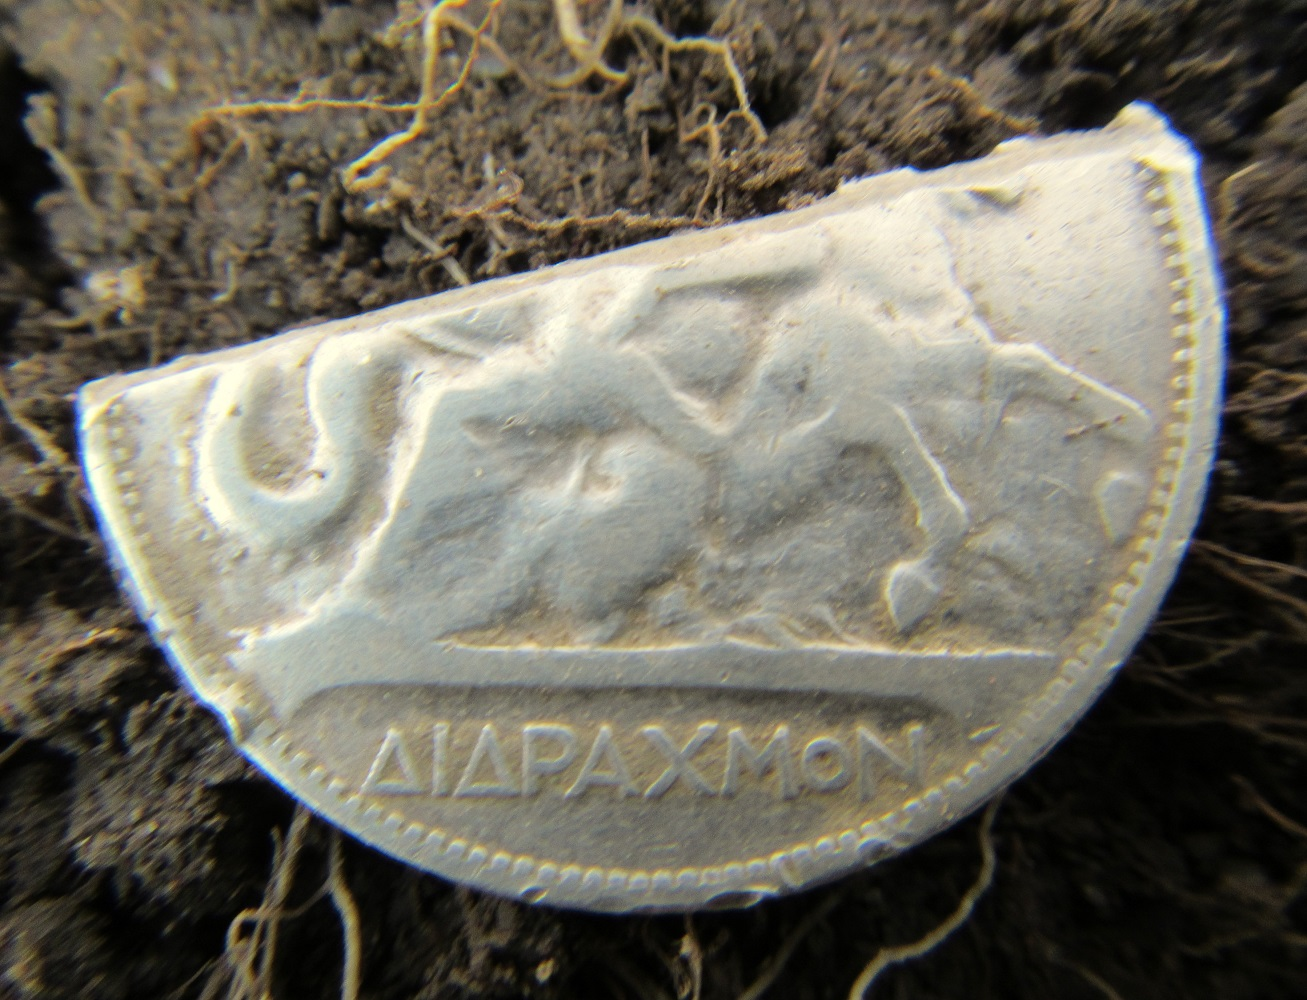 GreekDrachma2